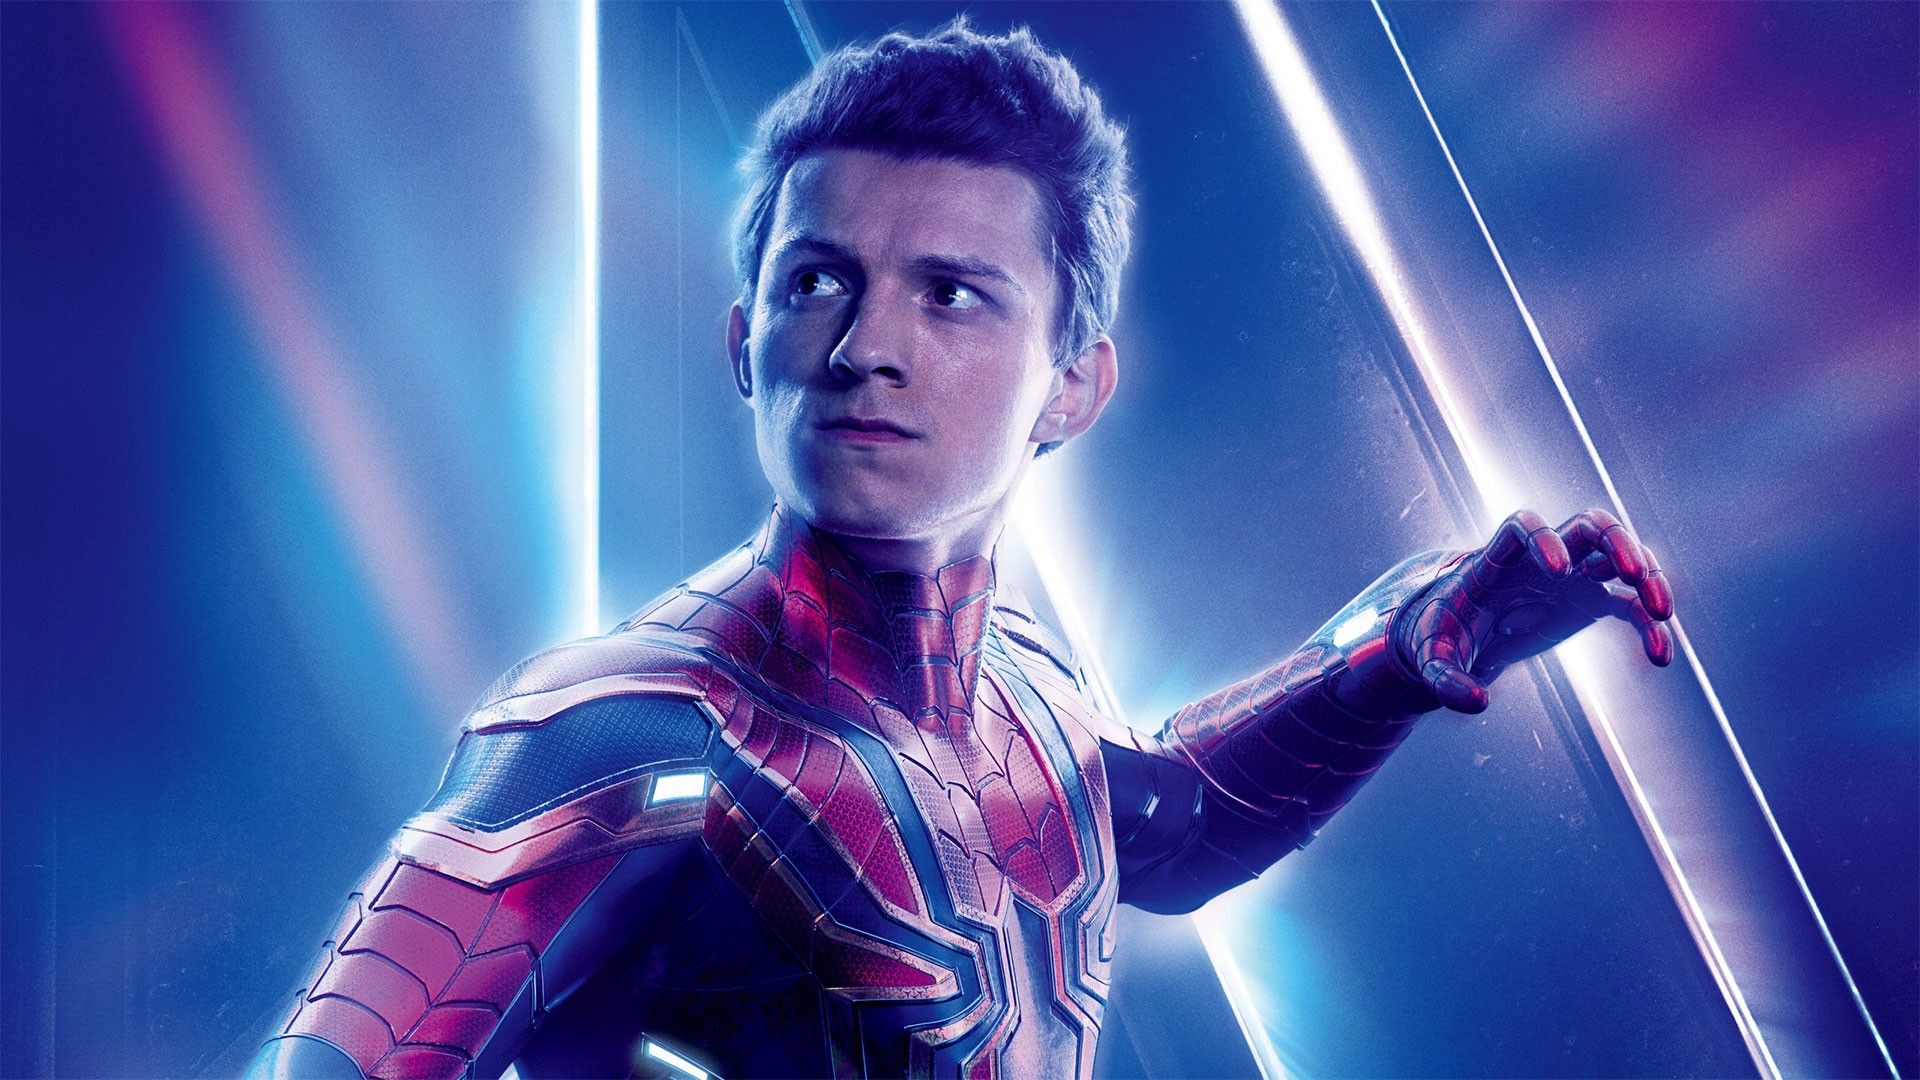 How To Choose Tom Holland Wallpaper Designs